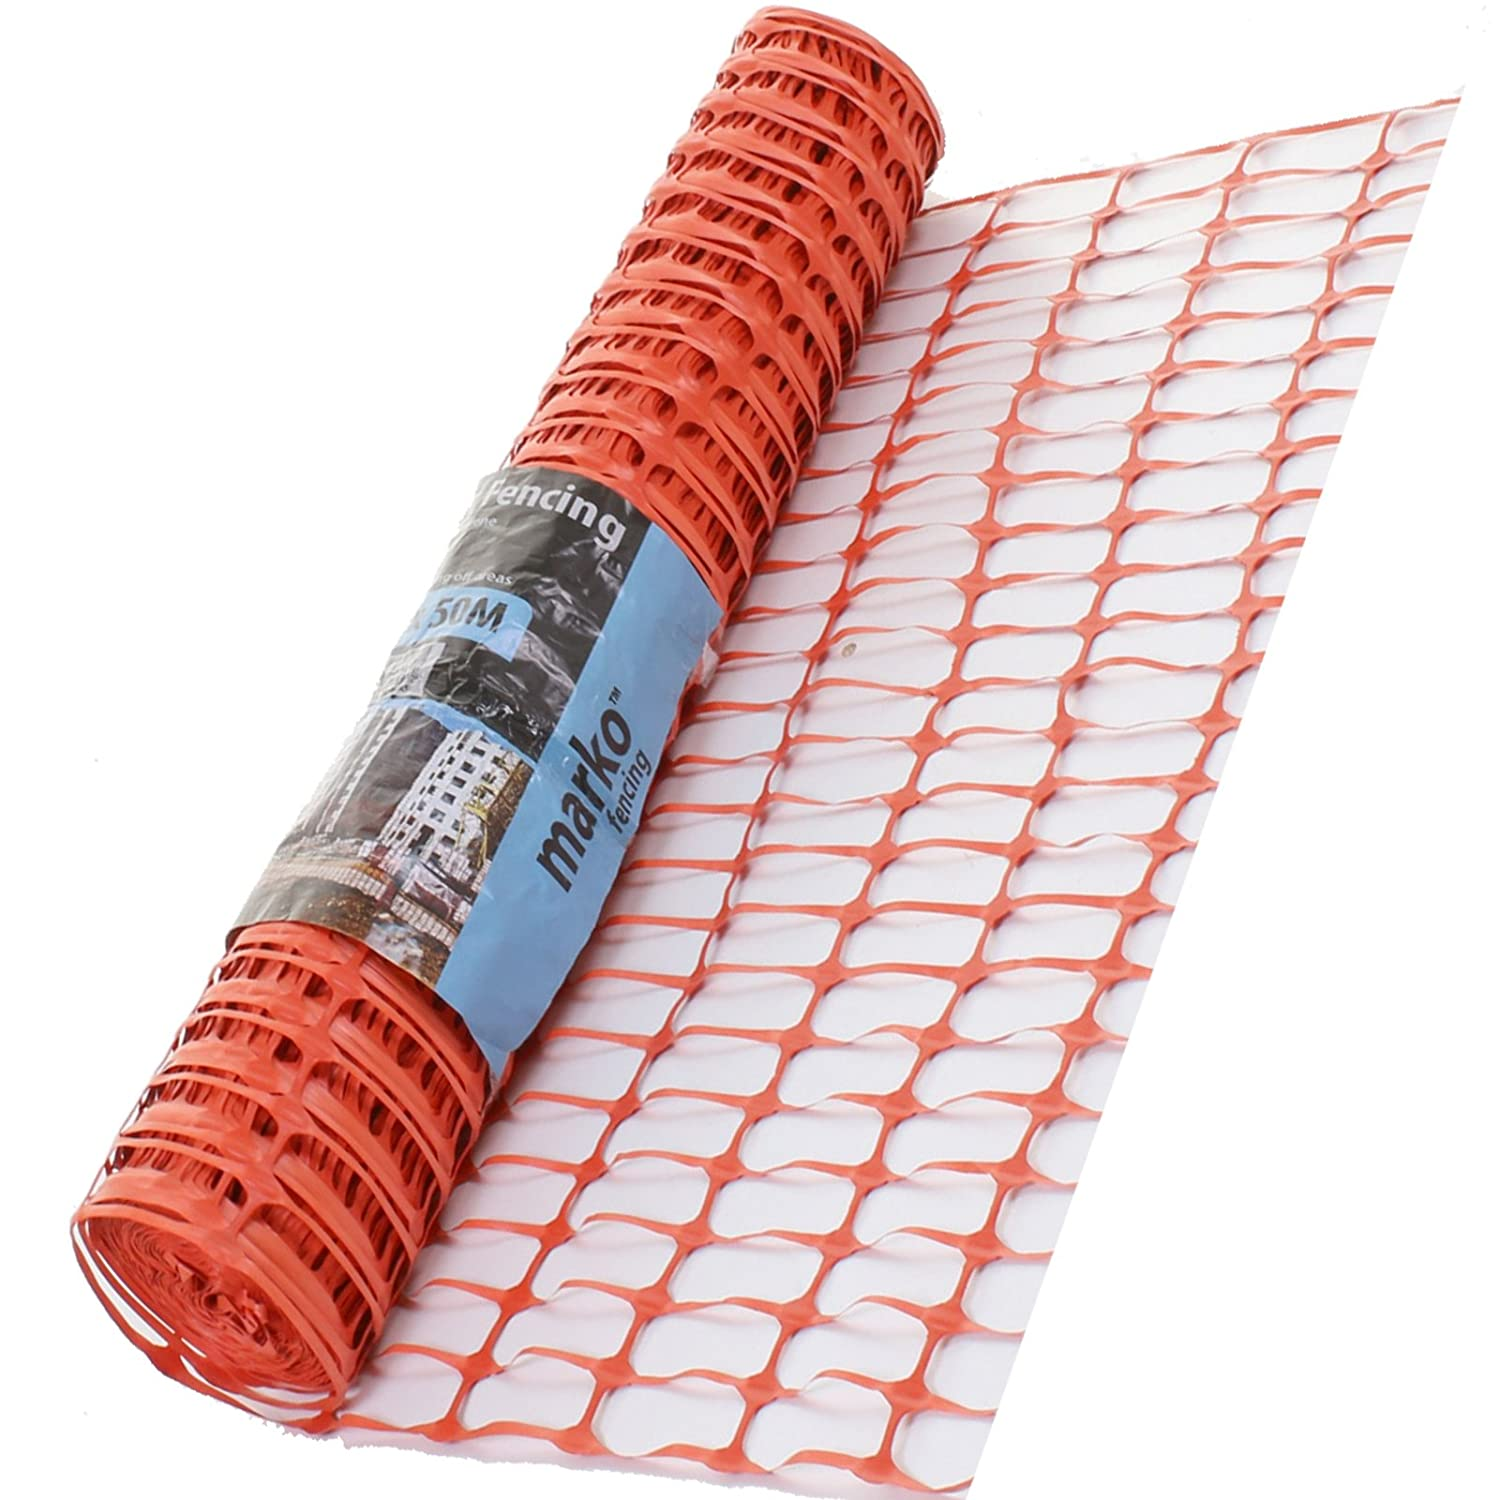 Marko Fencing Orange Plastic Barrier Fencing Mesh 1m x 50M Rolls Safety Sporting Safety (1)